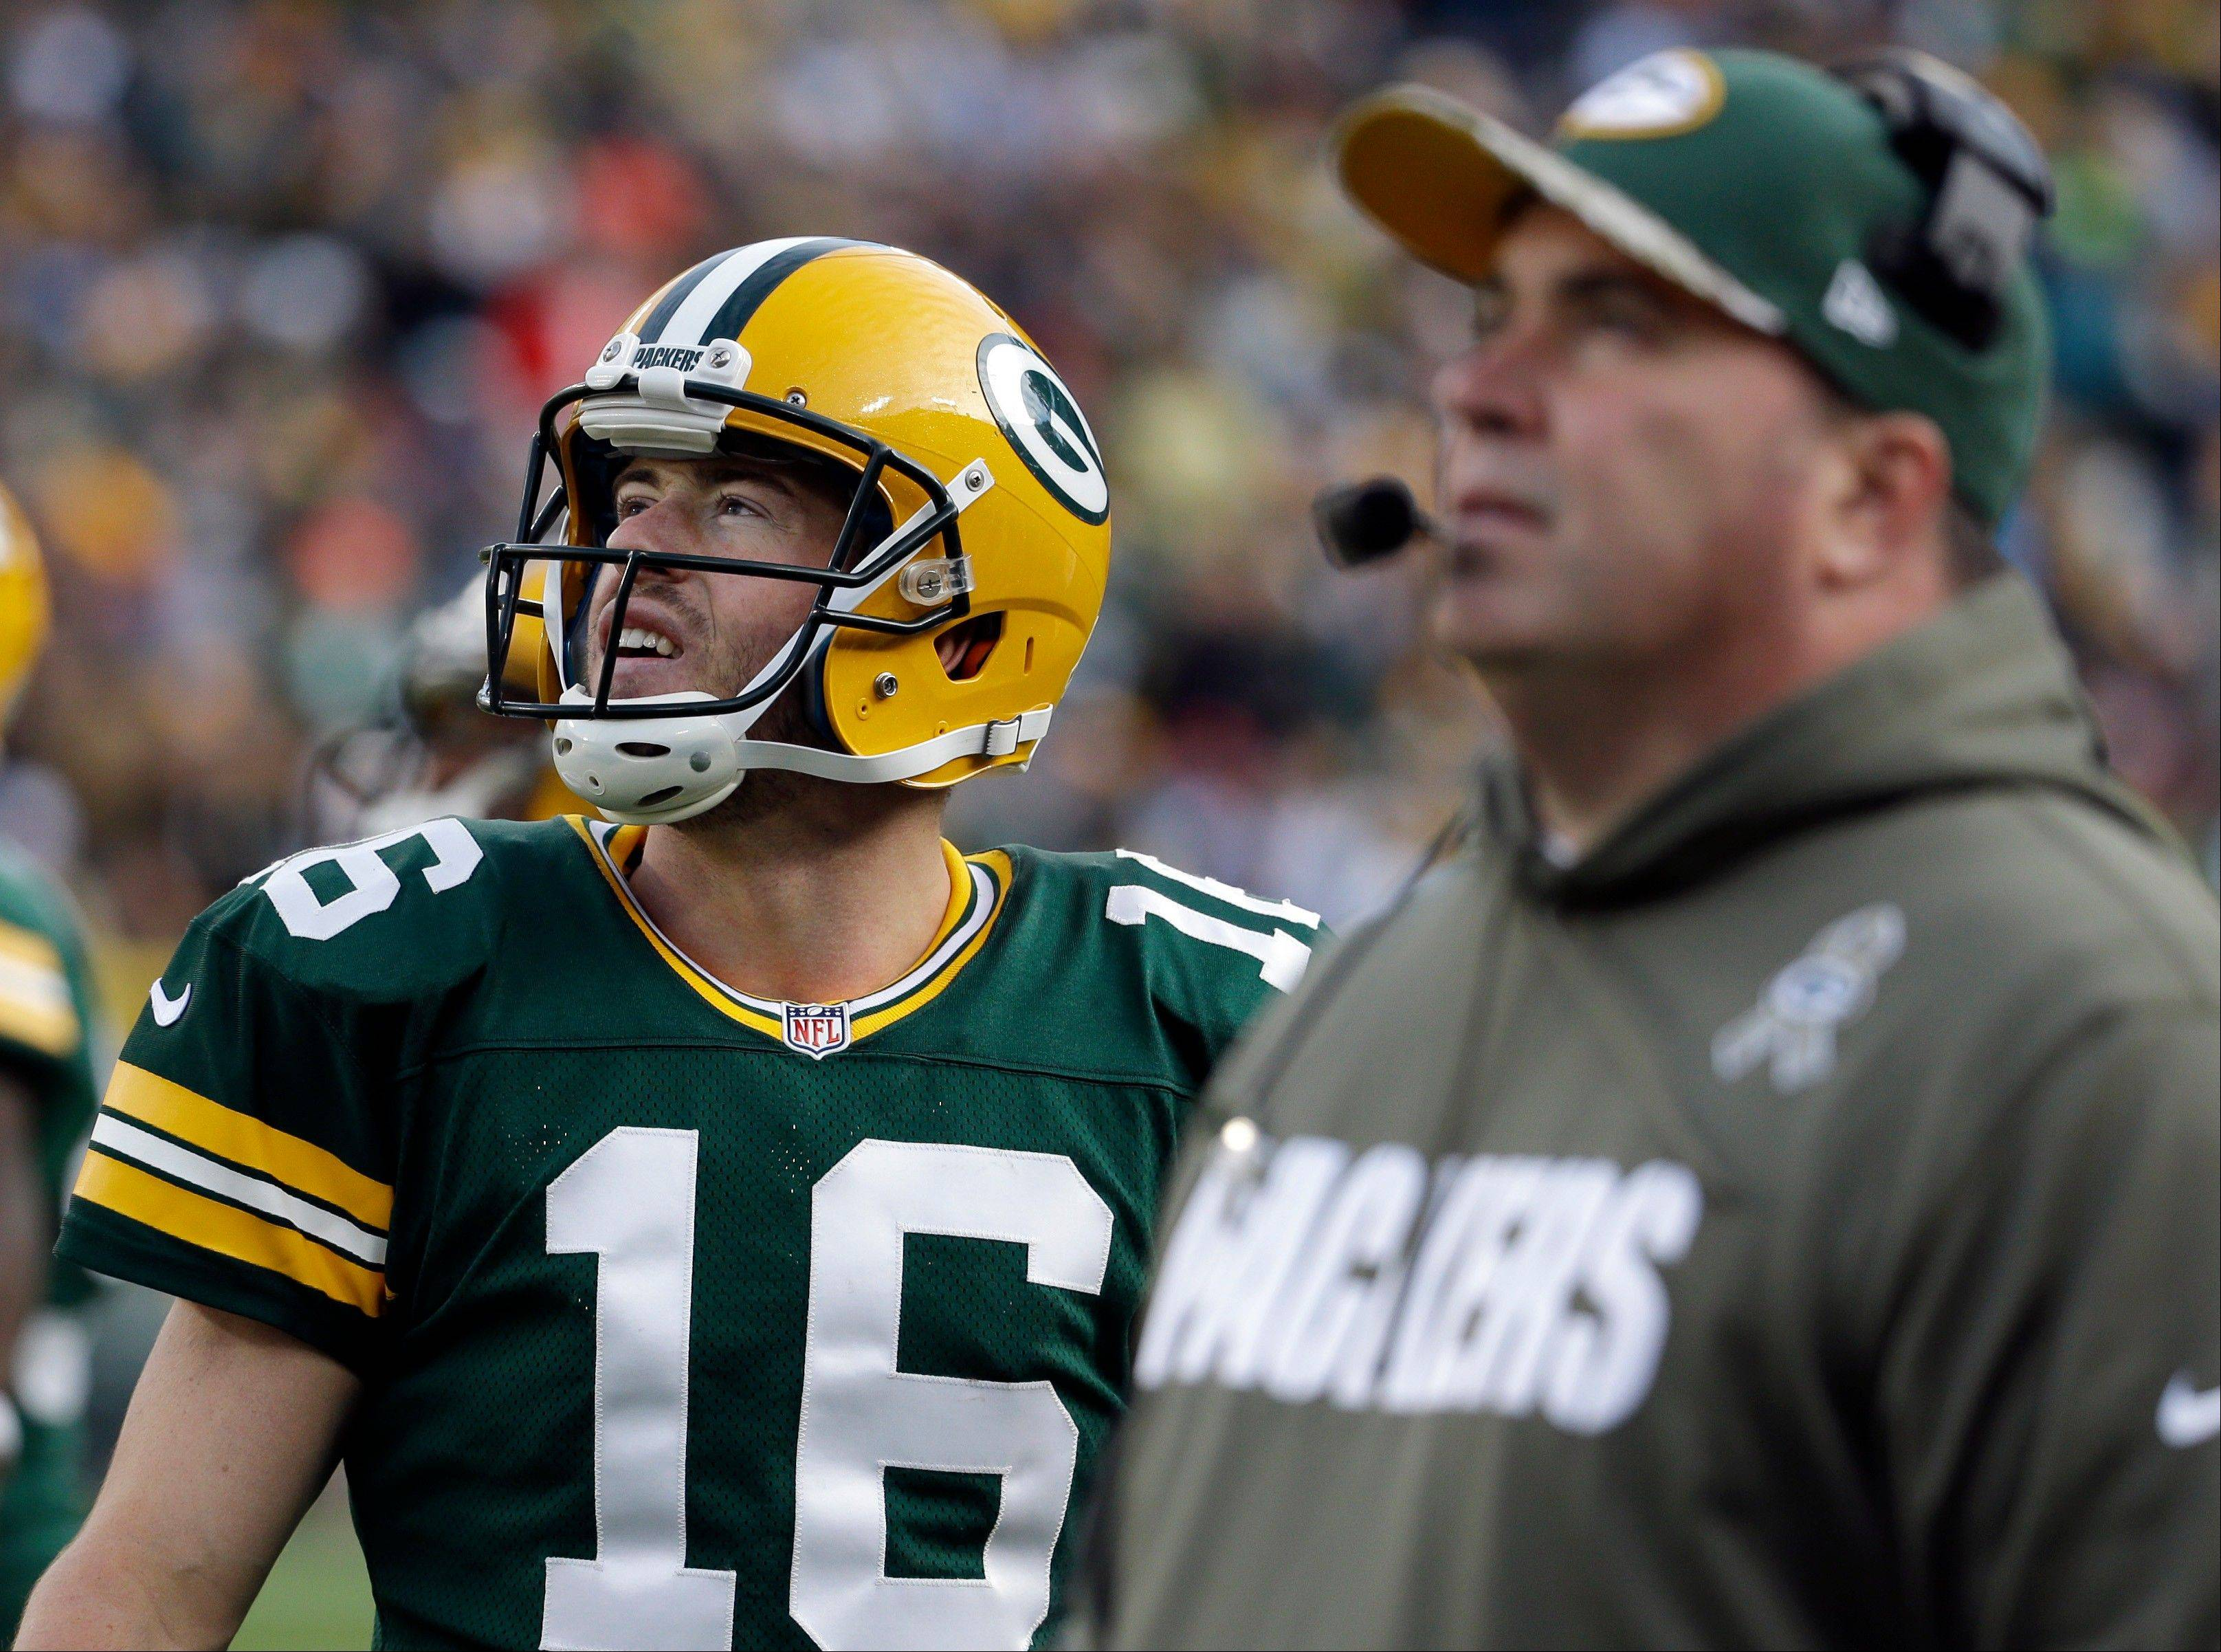 Green Bay Packers head coach Mike McCarthy and quarterback Scott Tolzien look at a video board during the second half of an NFL football game against the Philadelphia Eagles Sunday, Nov. 10, 2013, in Green Bay, Wis. The Eagles won 27-13.